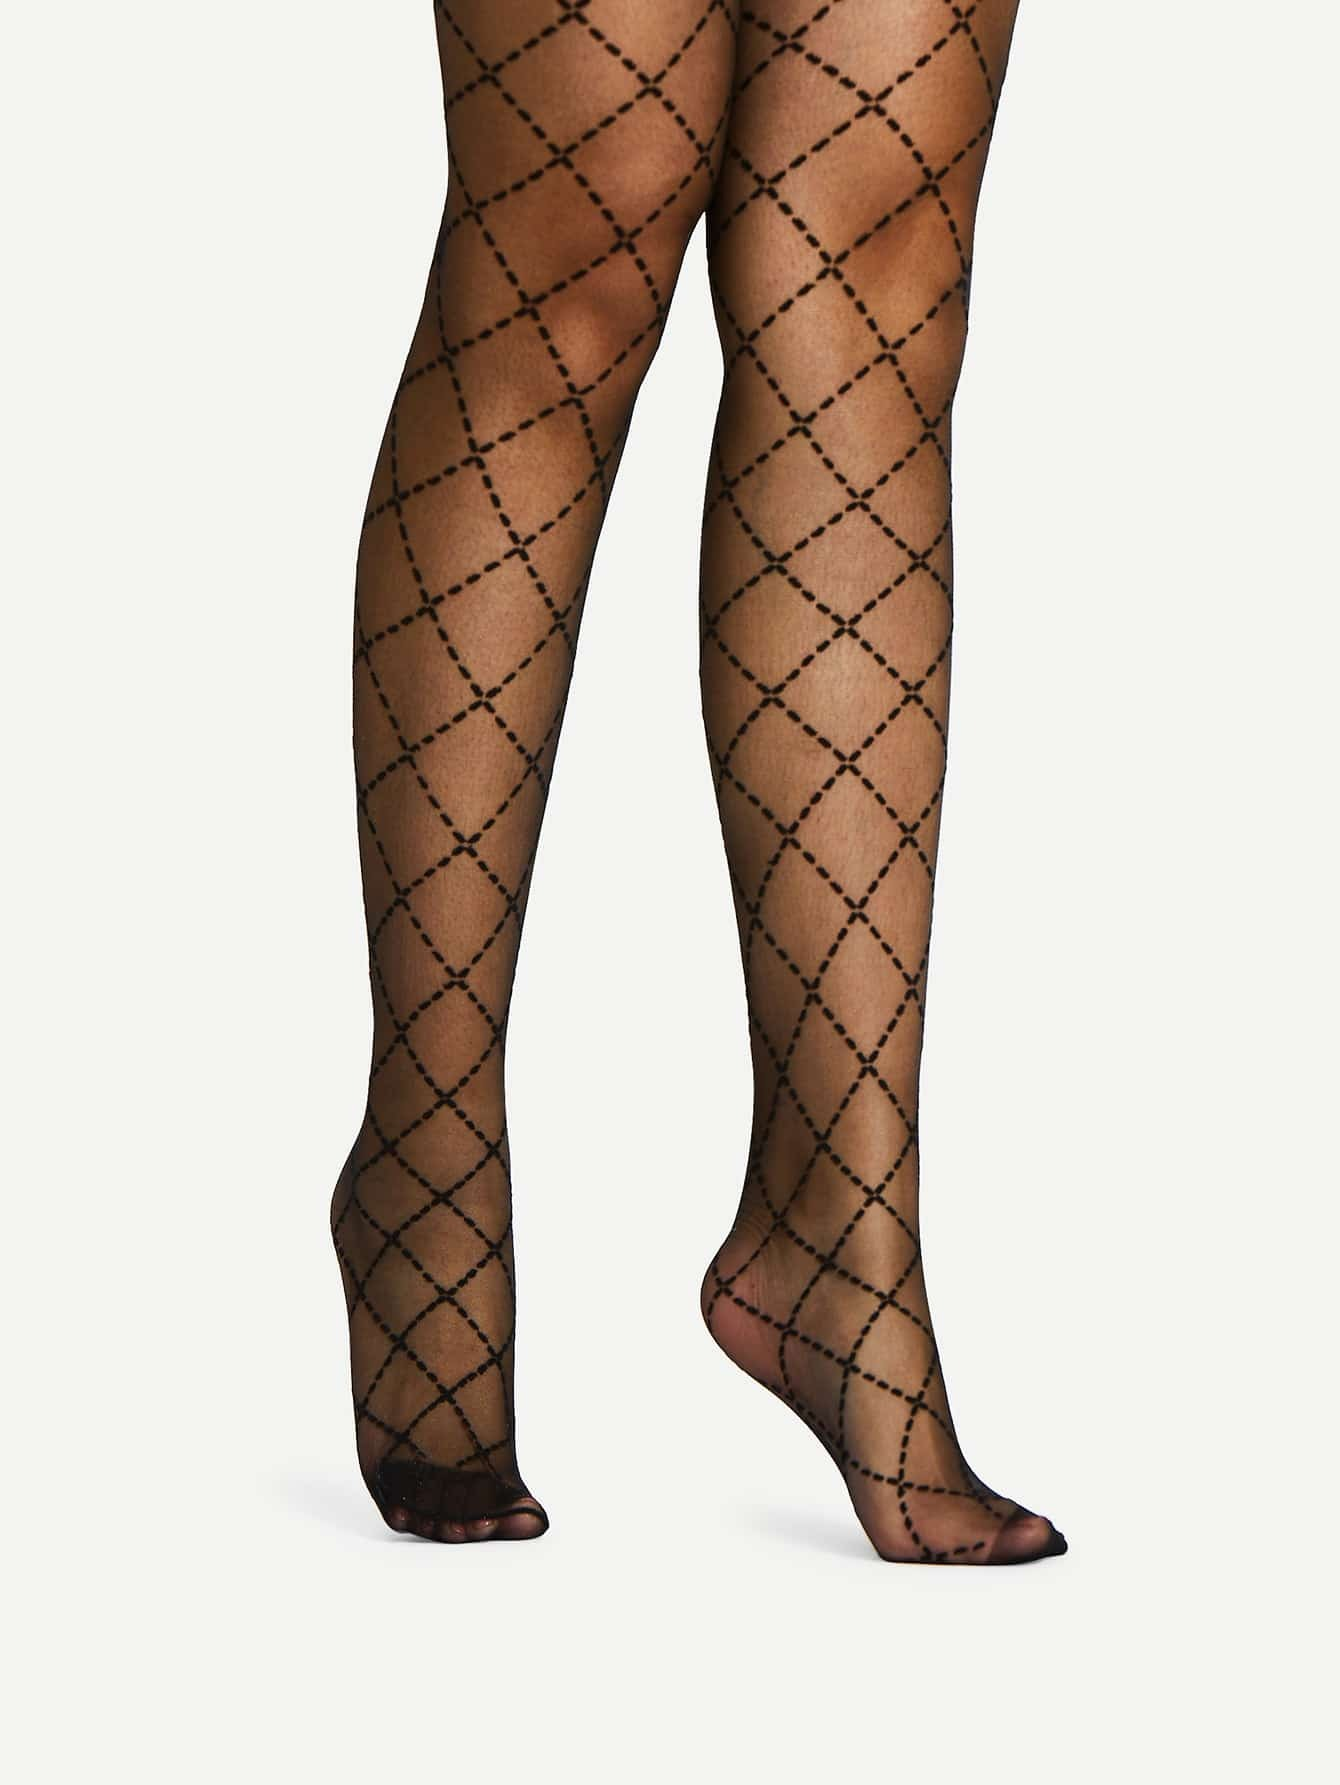 Quilted Design Pantyhose Stockings mesh design pantyhose stockings